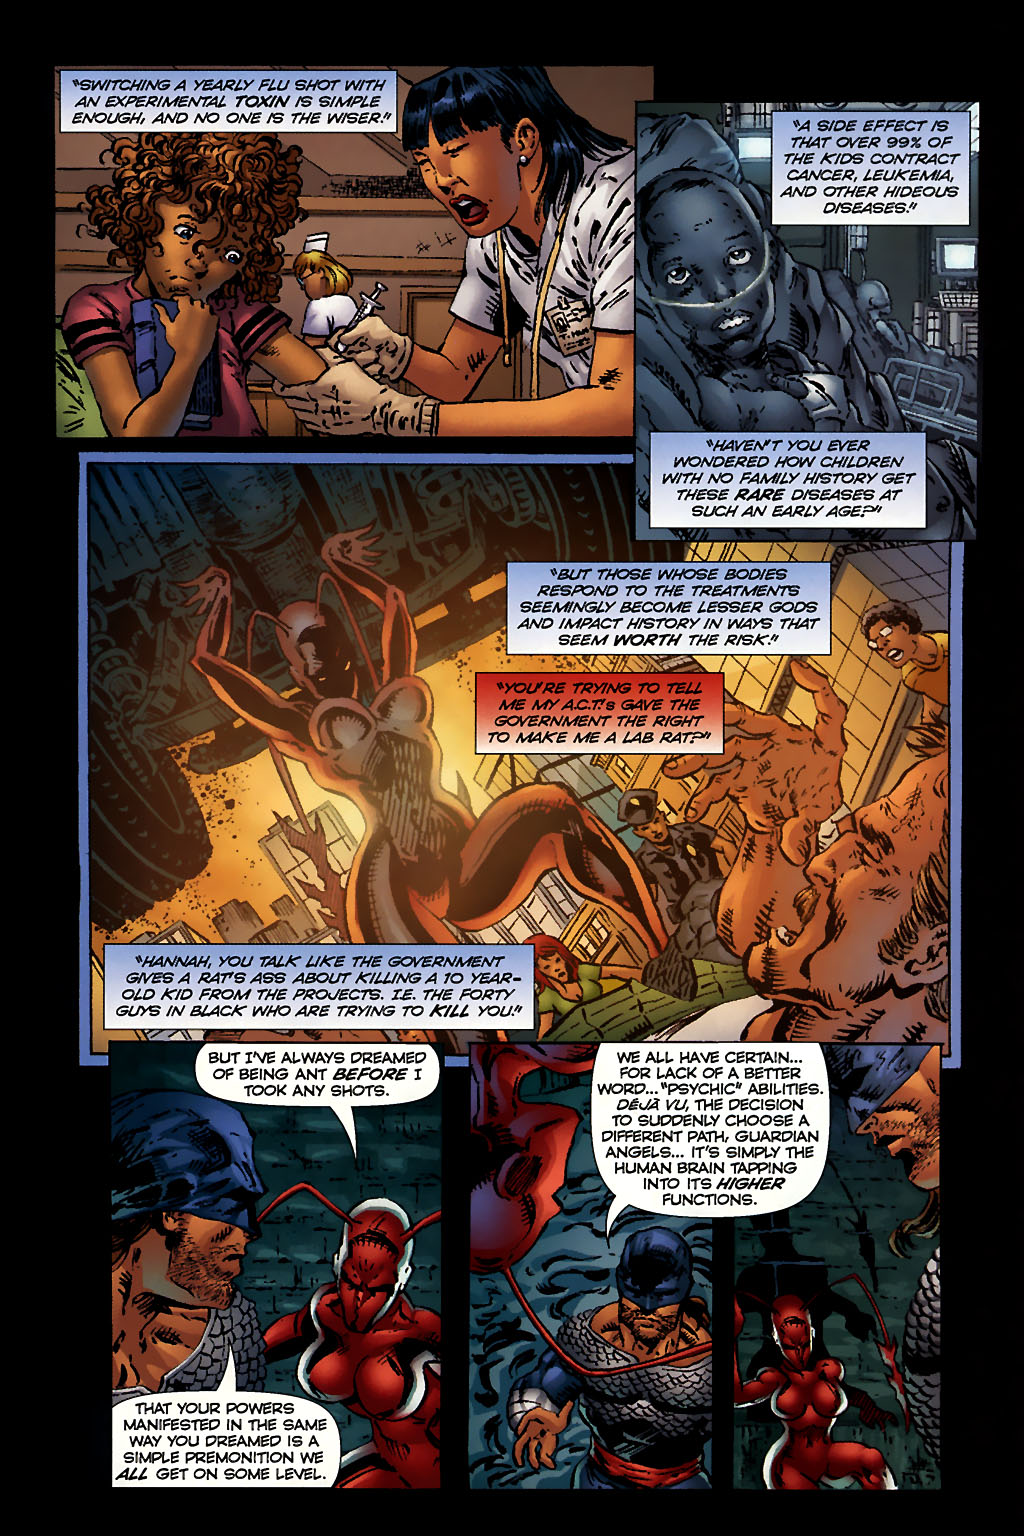 Read online Ant comic -  Issue #10 - 12